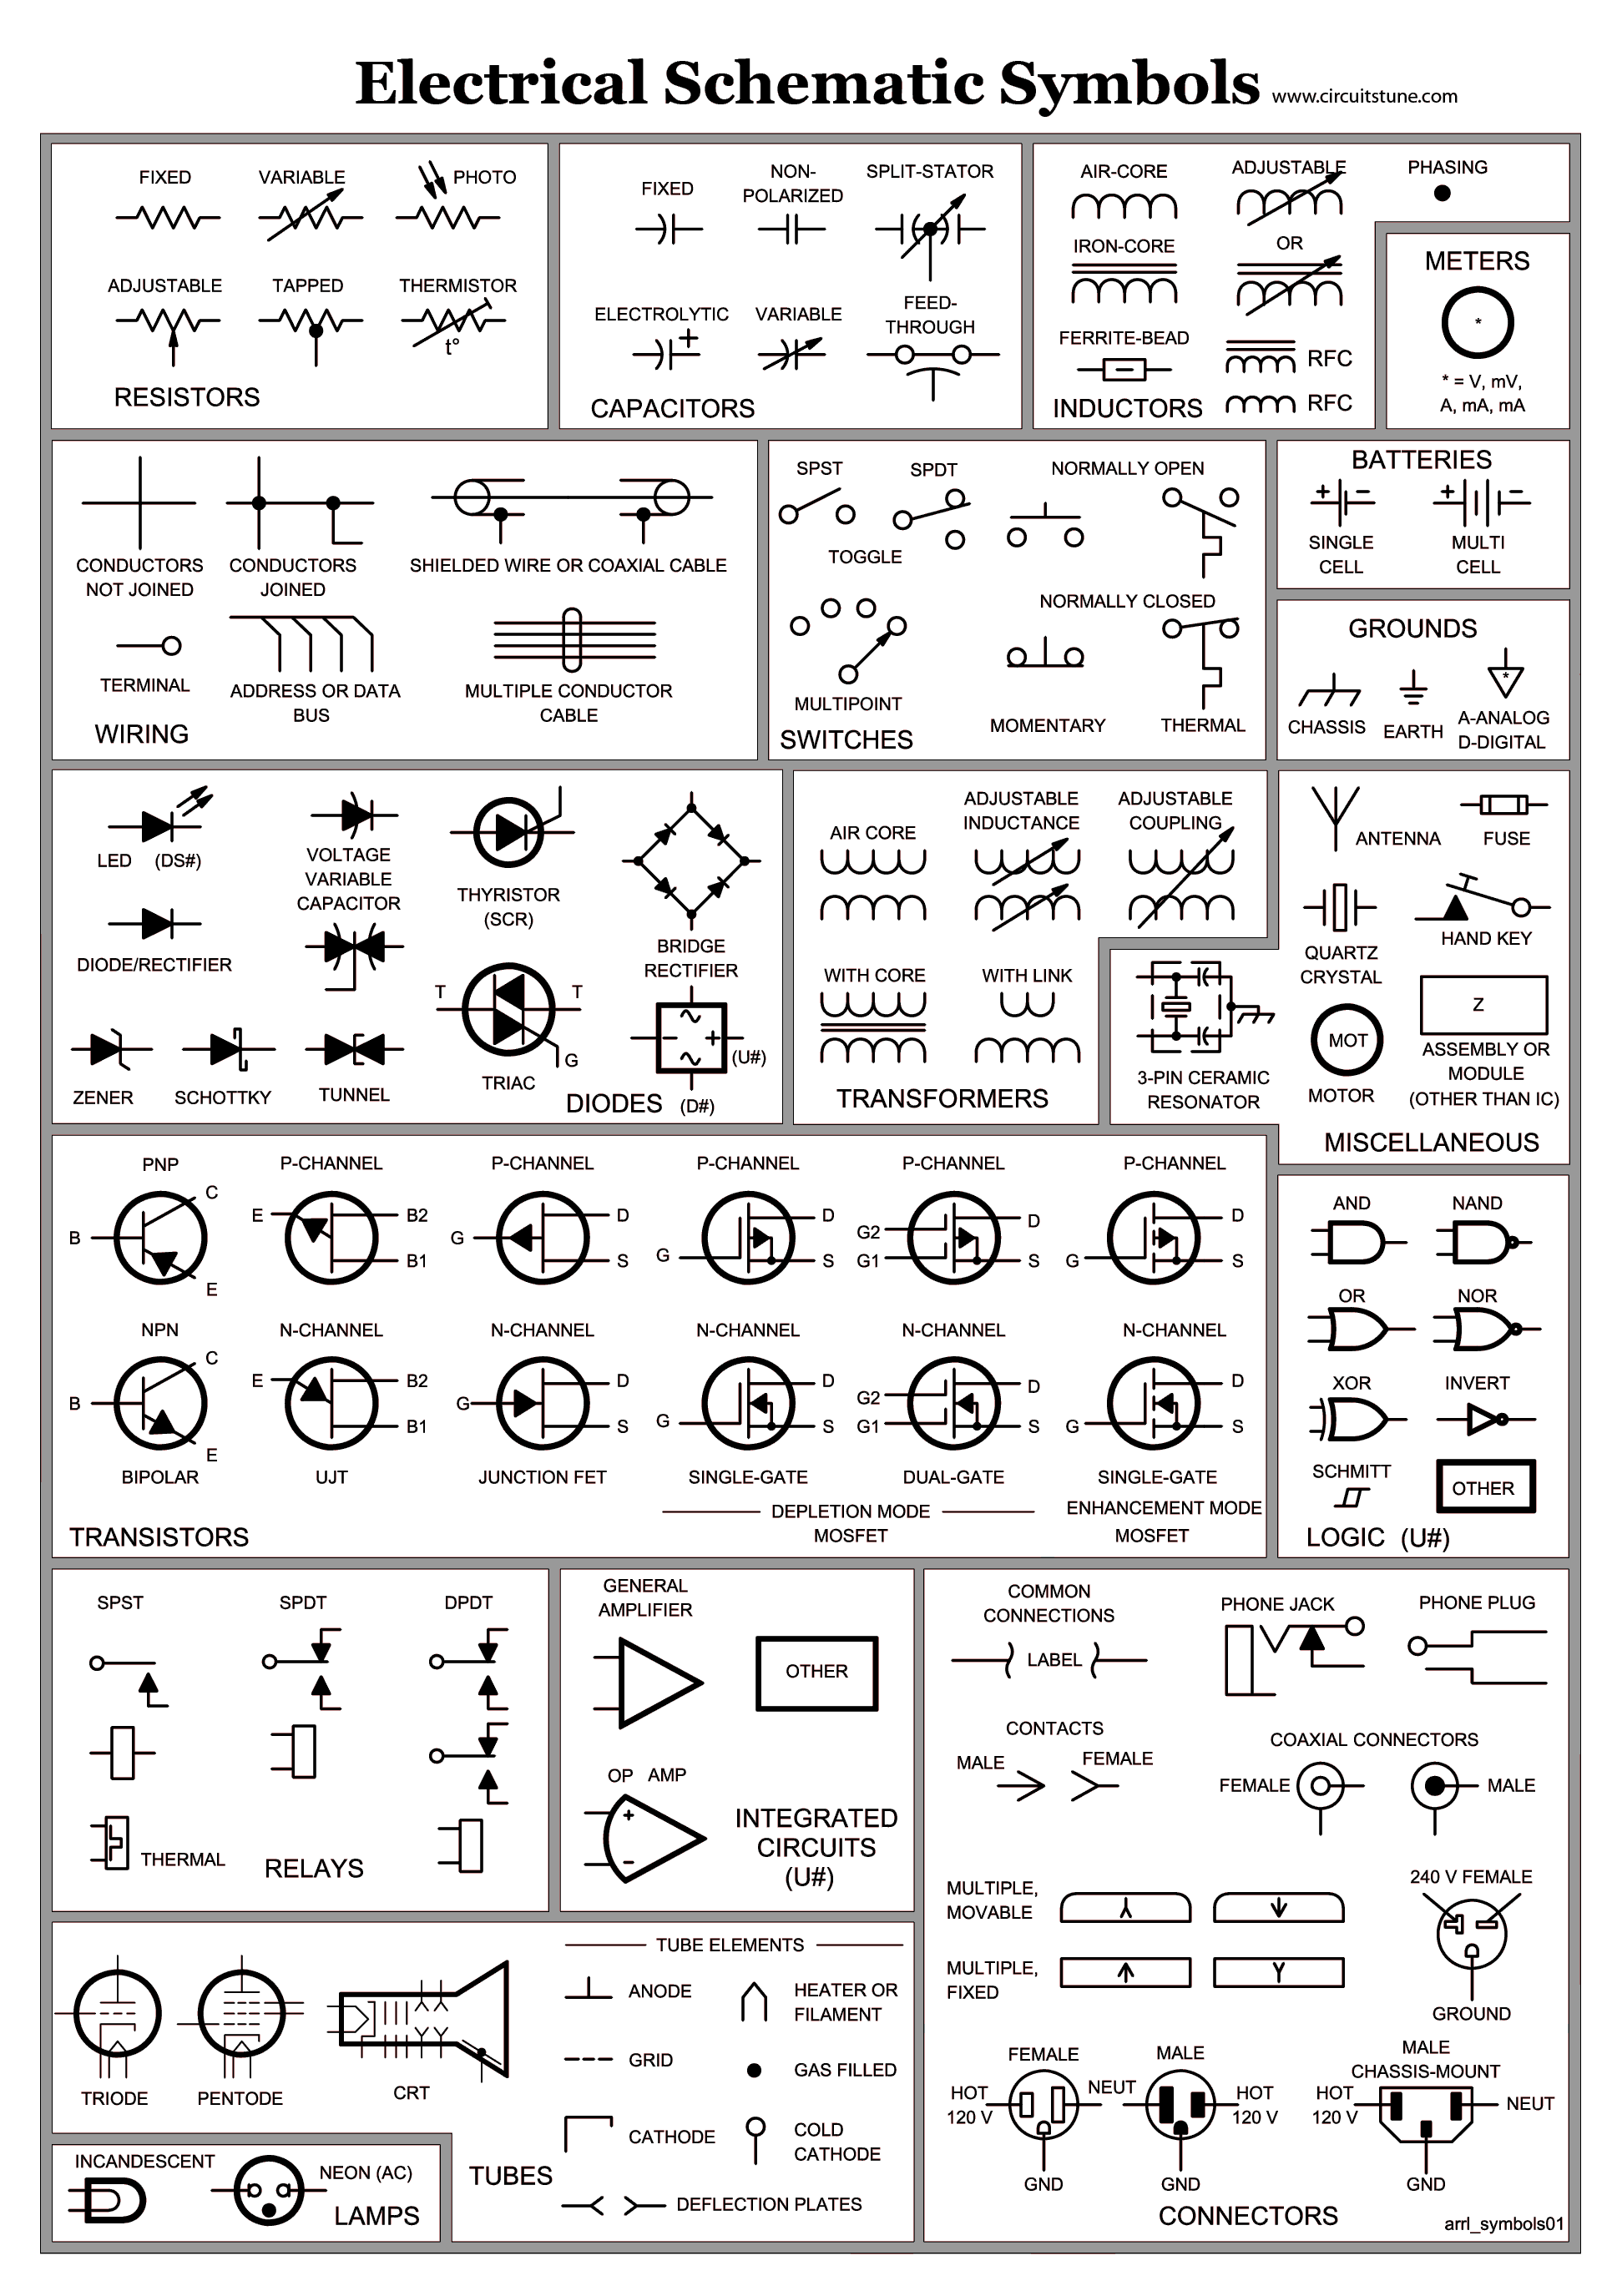 electrical schematic symbols wire diagram symbols automotive wiring circuit diagram symbols electrical schematic symbols wire diagram [ 1937 x 2751 Pixel ]